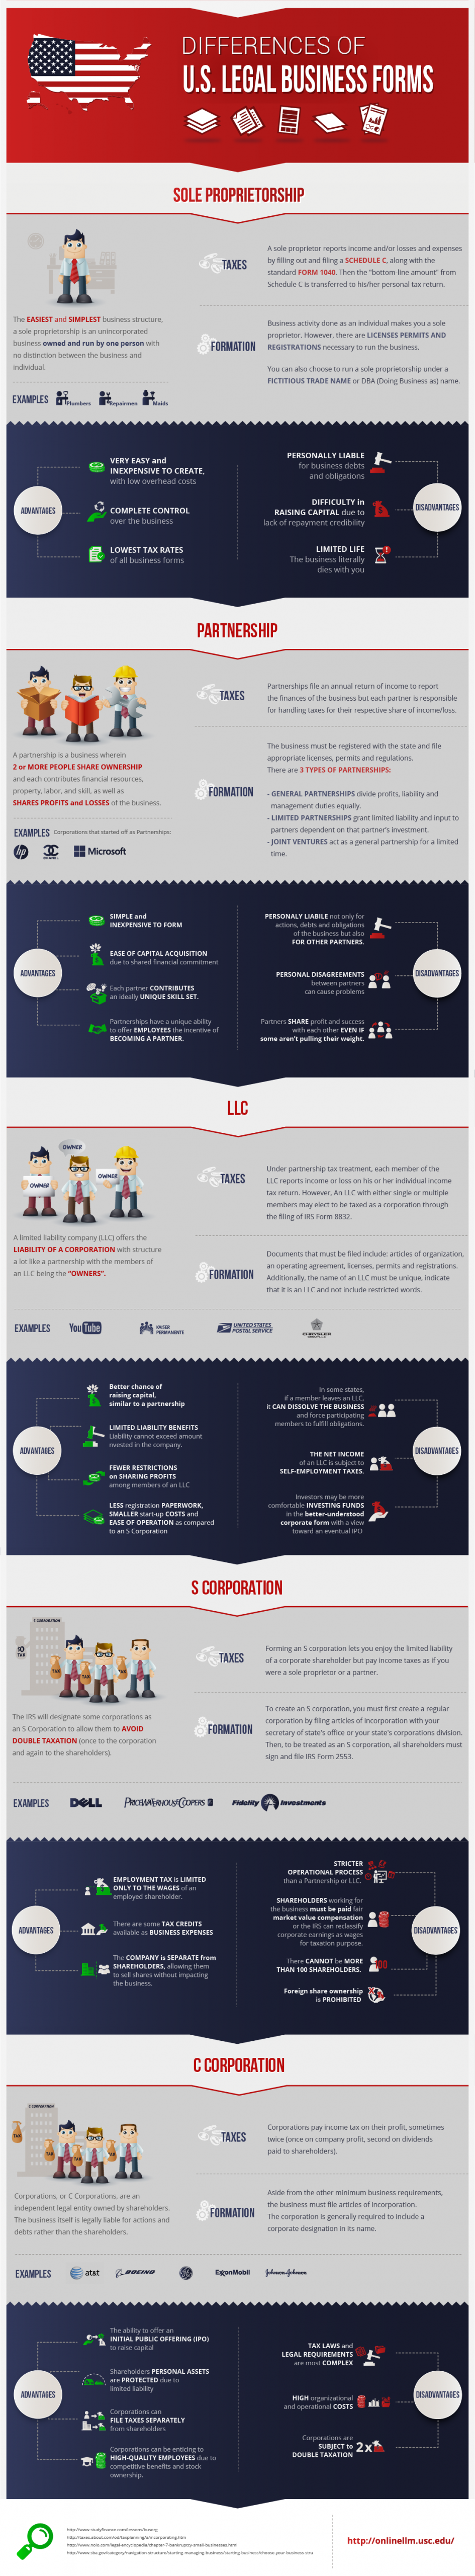 """Differences of U.S. legal business forms"""